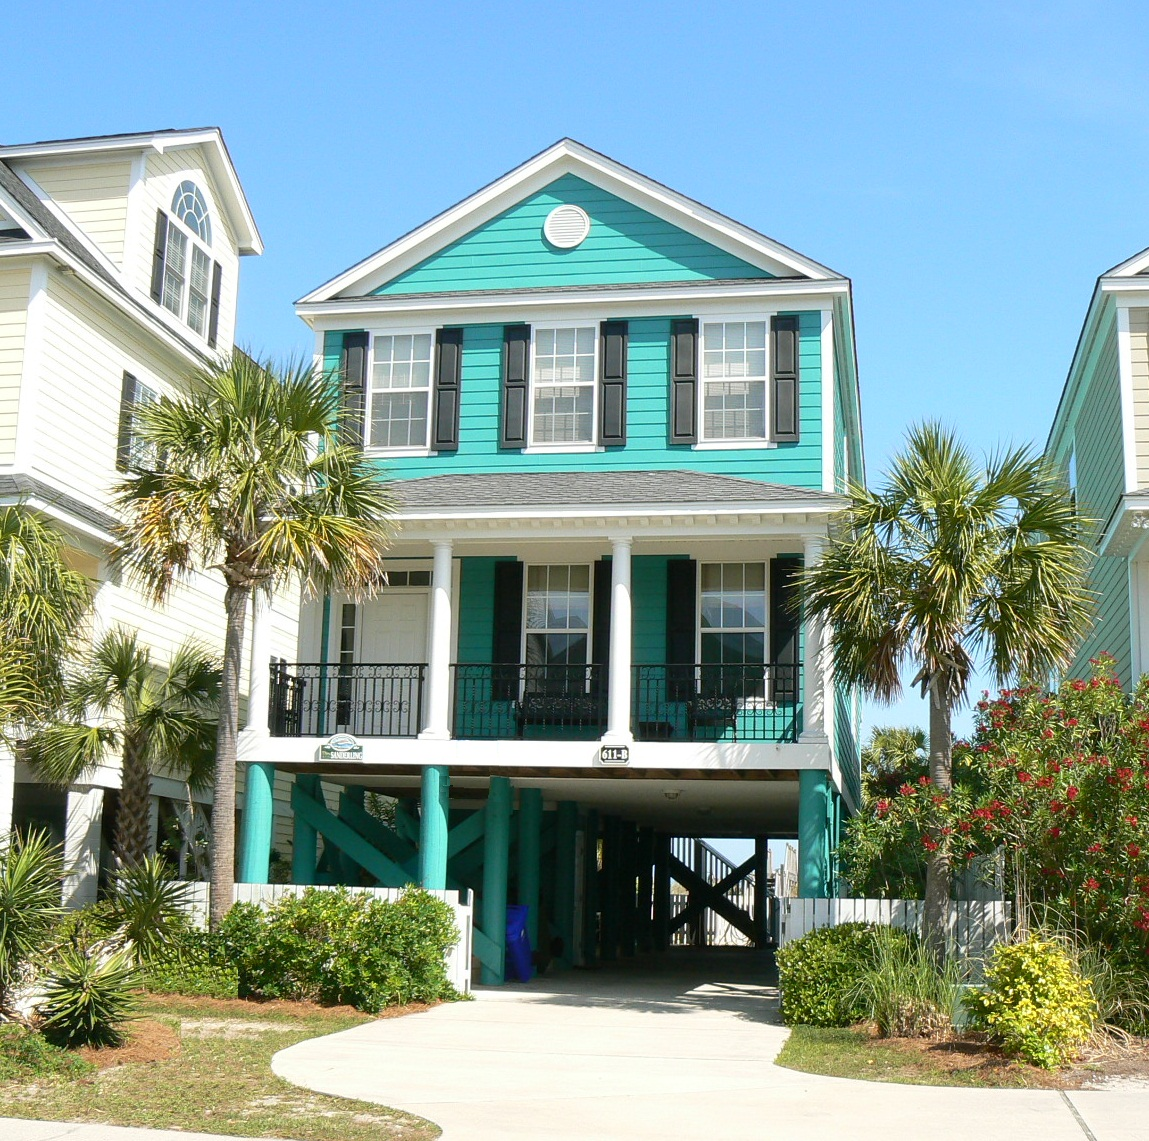 The Beach House Garden City Sc: Sanderling 611B N. Ocean Blvd., Surfside Beach, SC 29575